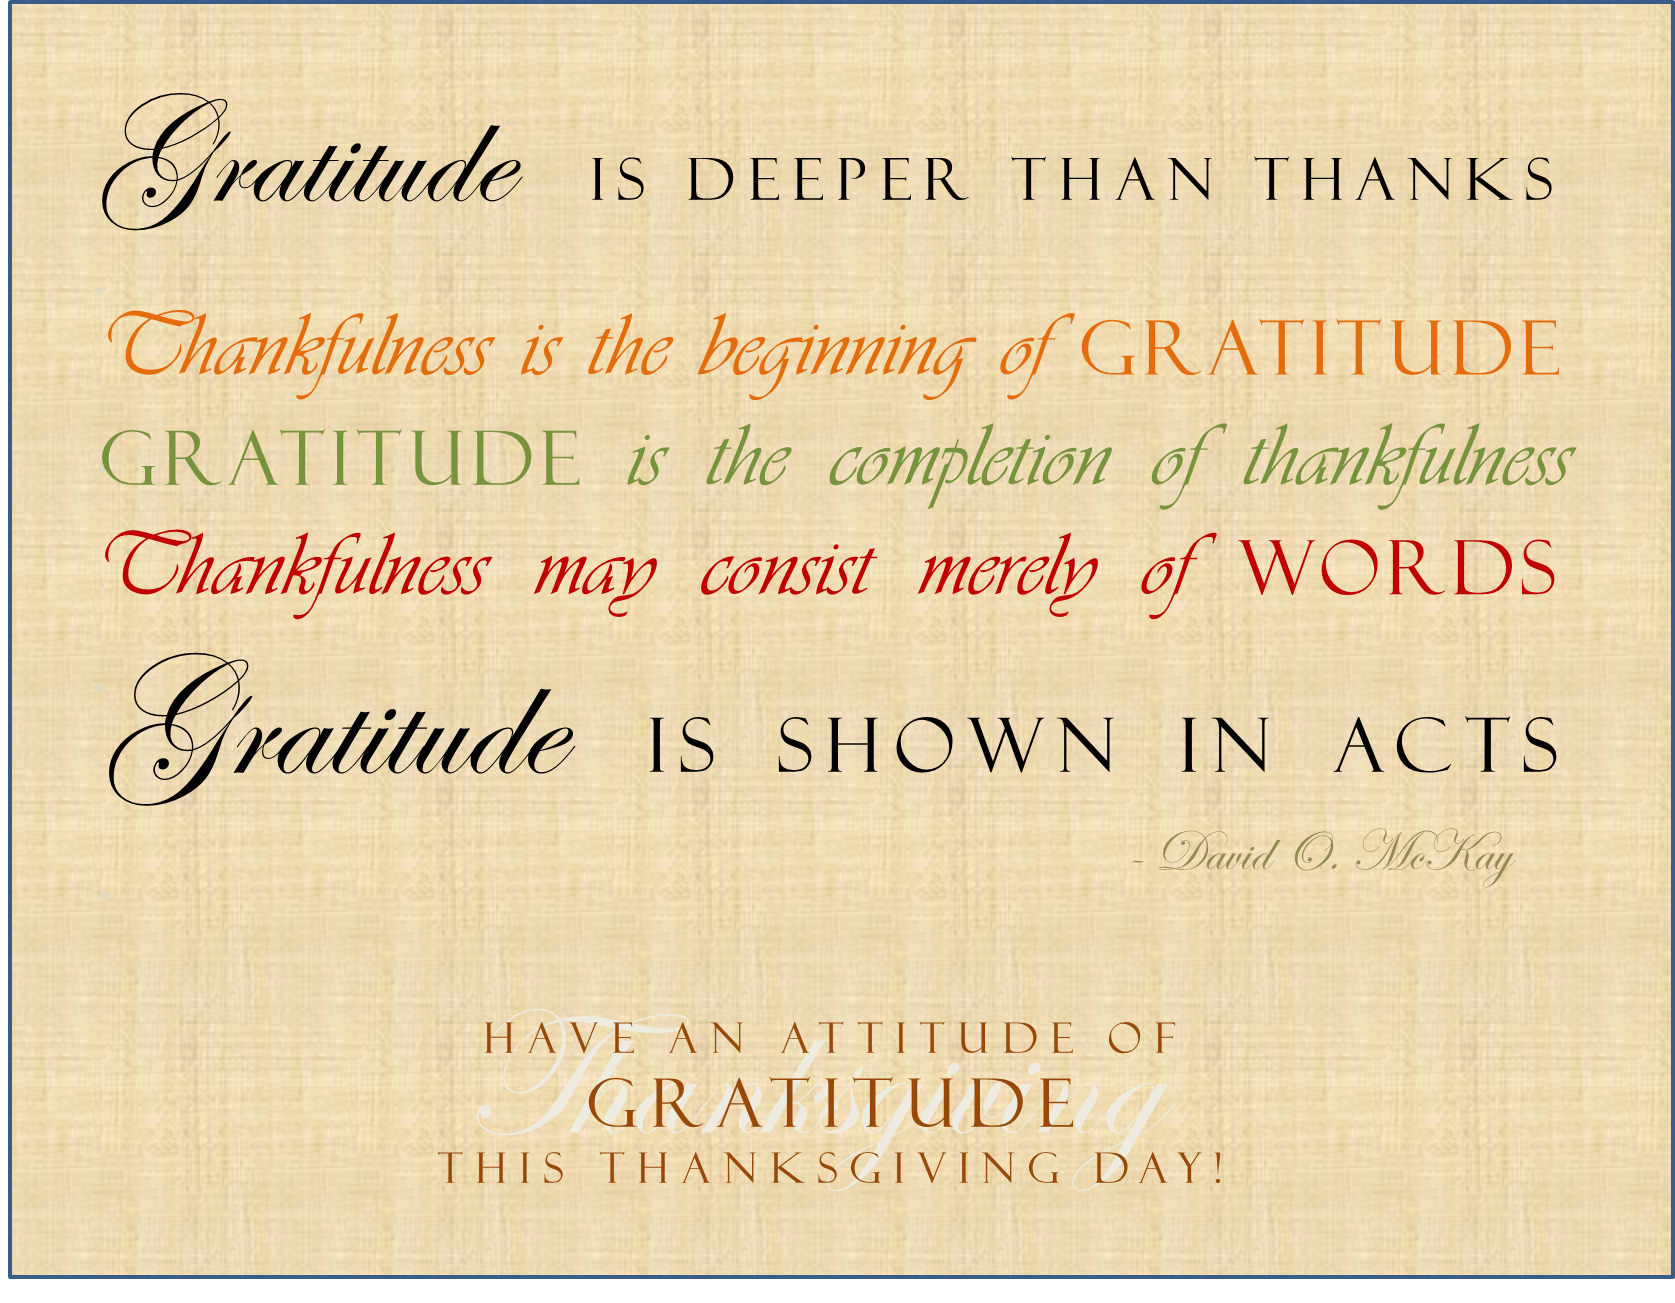 Gratitude Quotes: A Winner & The Next Big Thing Bloghop